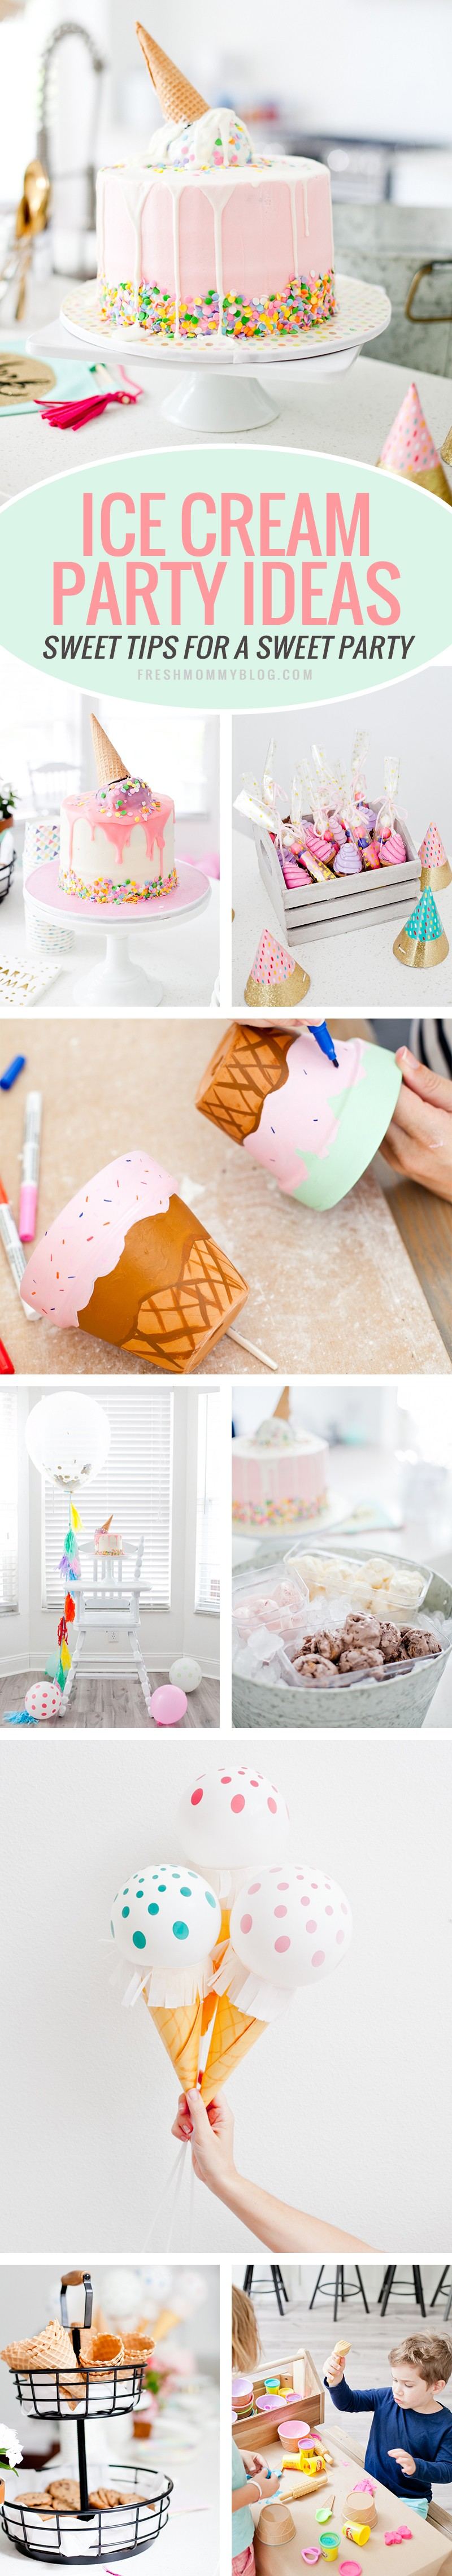 "Ice Cream Party Ideas for an Ice Cream Social Birthday Party with DIY Ice Cream Balloons, and ice cream cone ""spilled"" cake, Ice Cream bar with cookies for DIY ice cream cookies and more! Decorations, kids party, girls party tips from lifestyle blogger Tabitha Blue of Fresh Mommy Blog! #party #icecream #partydecor #partyideas"